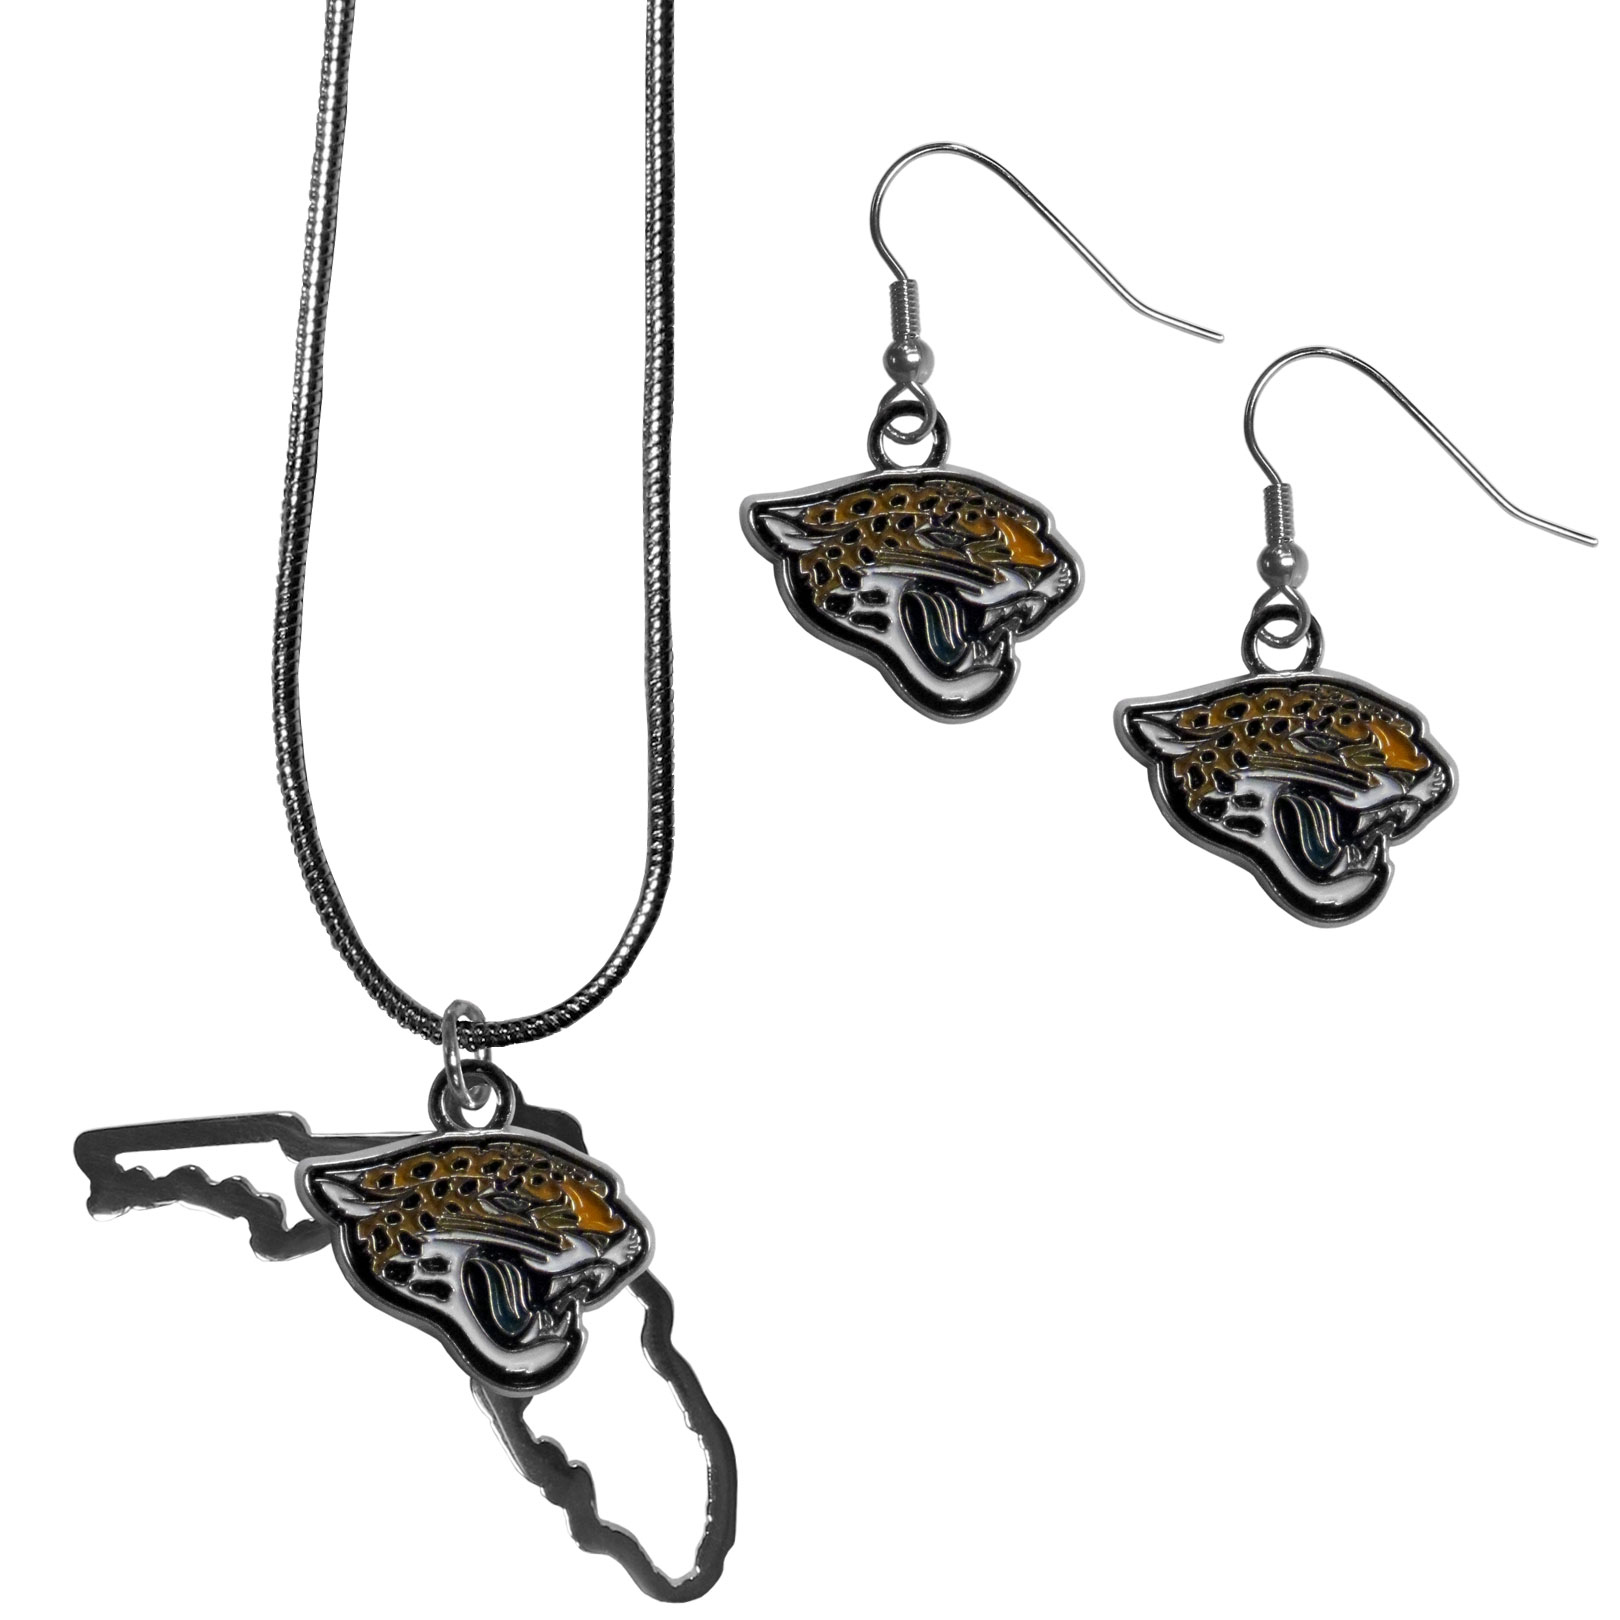 Jacksonville Jaguars Dangle Earrings and State Necklace Set - Get in on the trend! State themes are a trend that just keeps getting more popular and this jewelry set takes the state style and give it a sporty twist with a  necklace that features an Arizona state outline charm paired with a beautiful team charm and matching team charm dangle earrings. The earrings feature hypoallergenic fishhook posts that are nickel free.